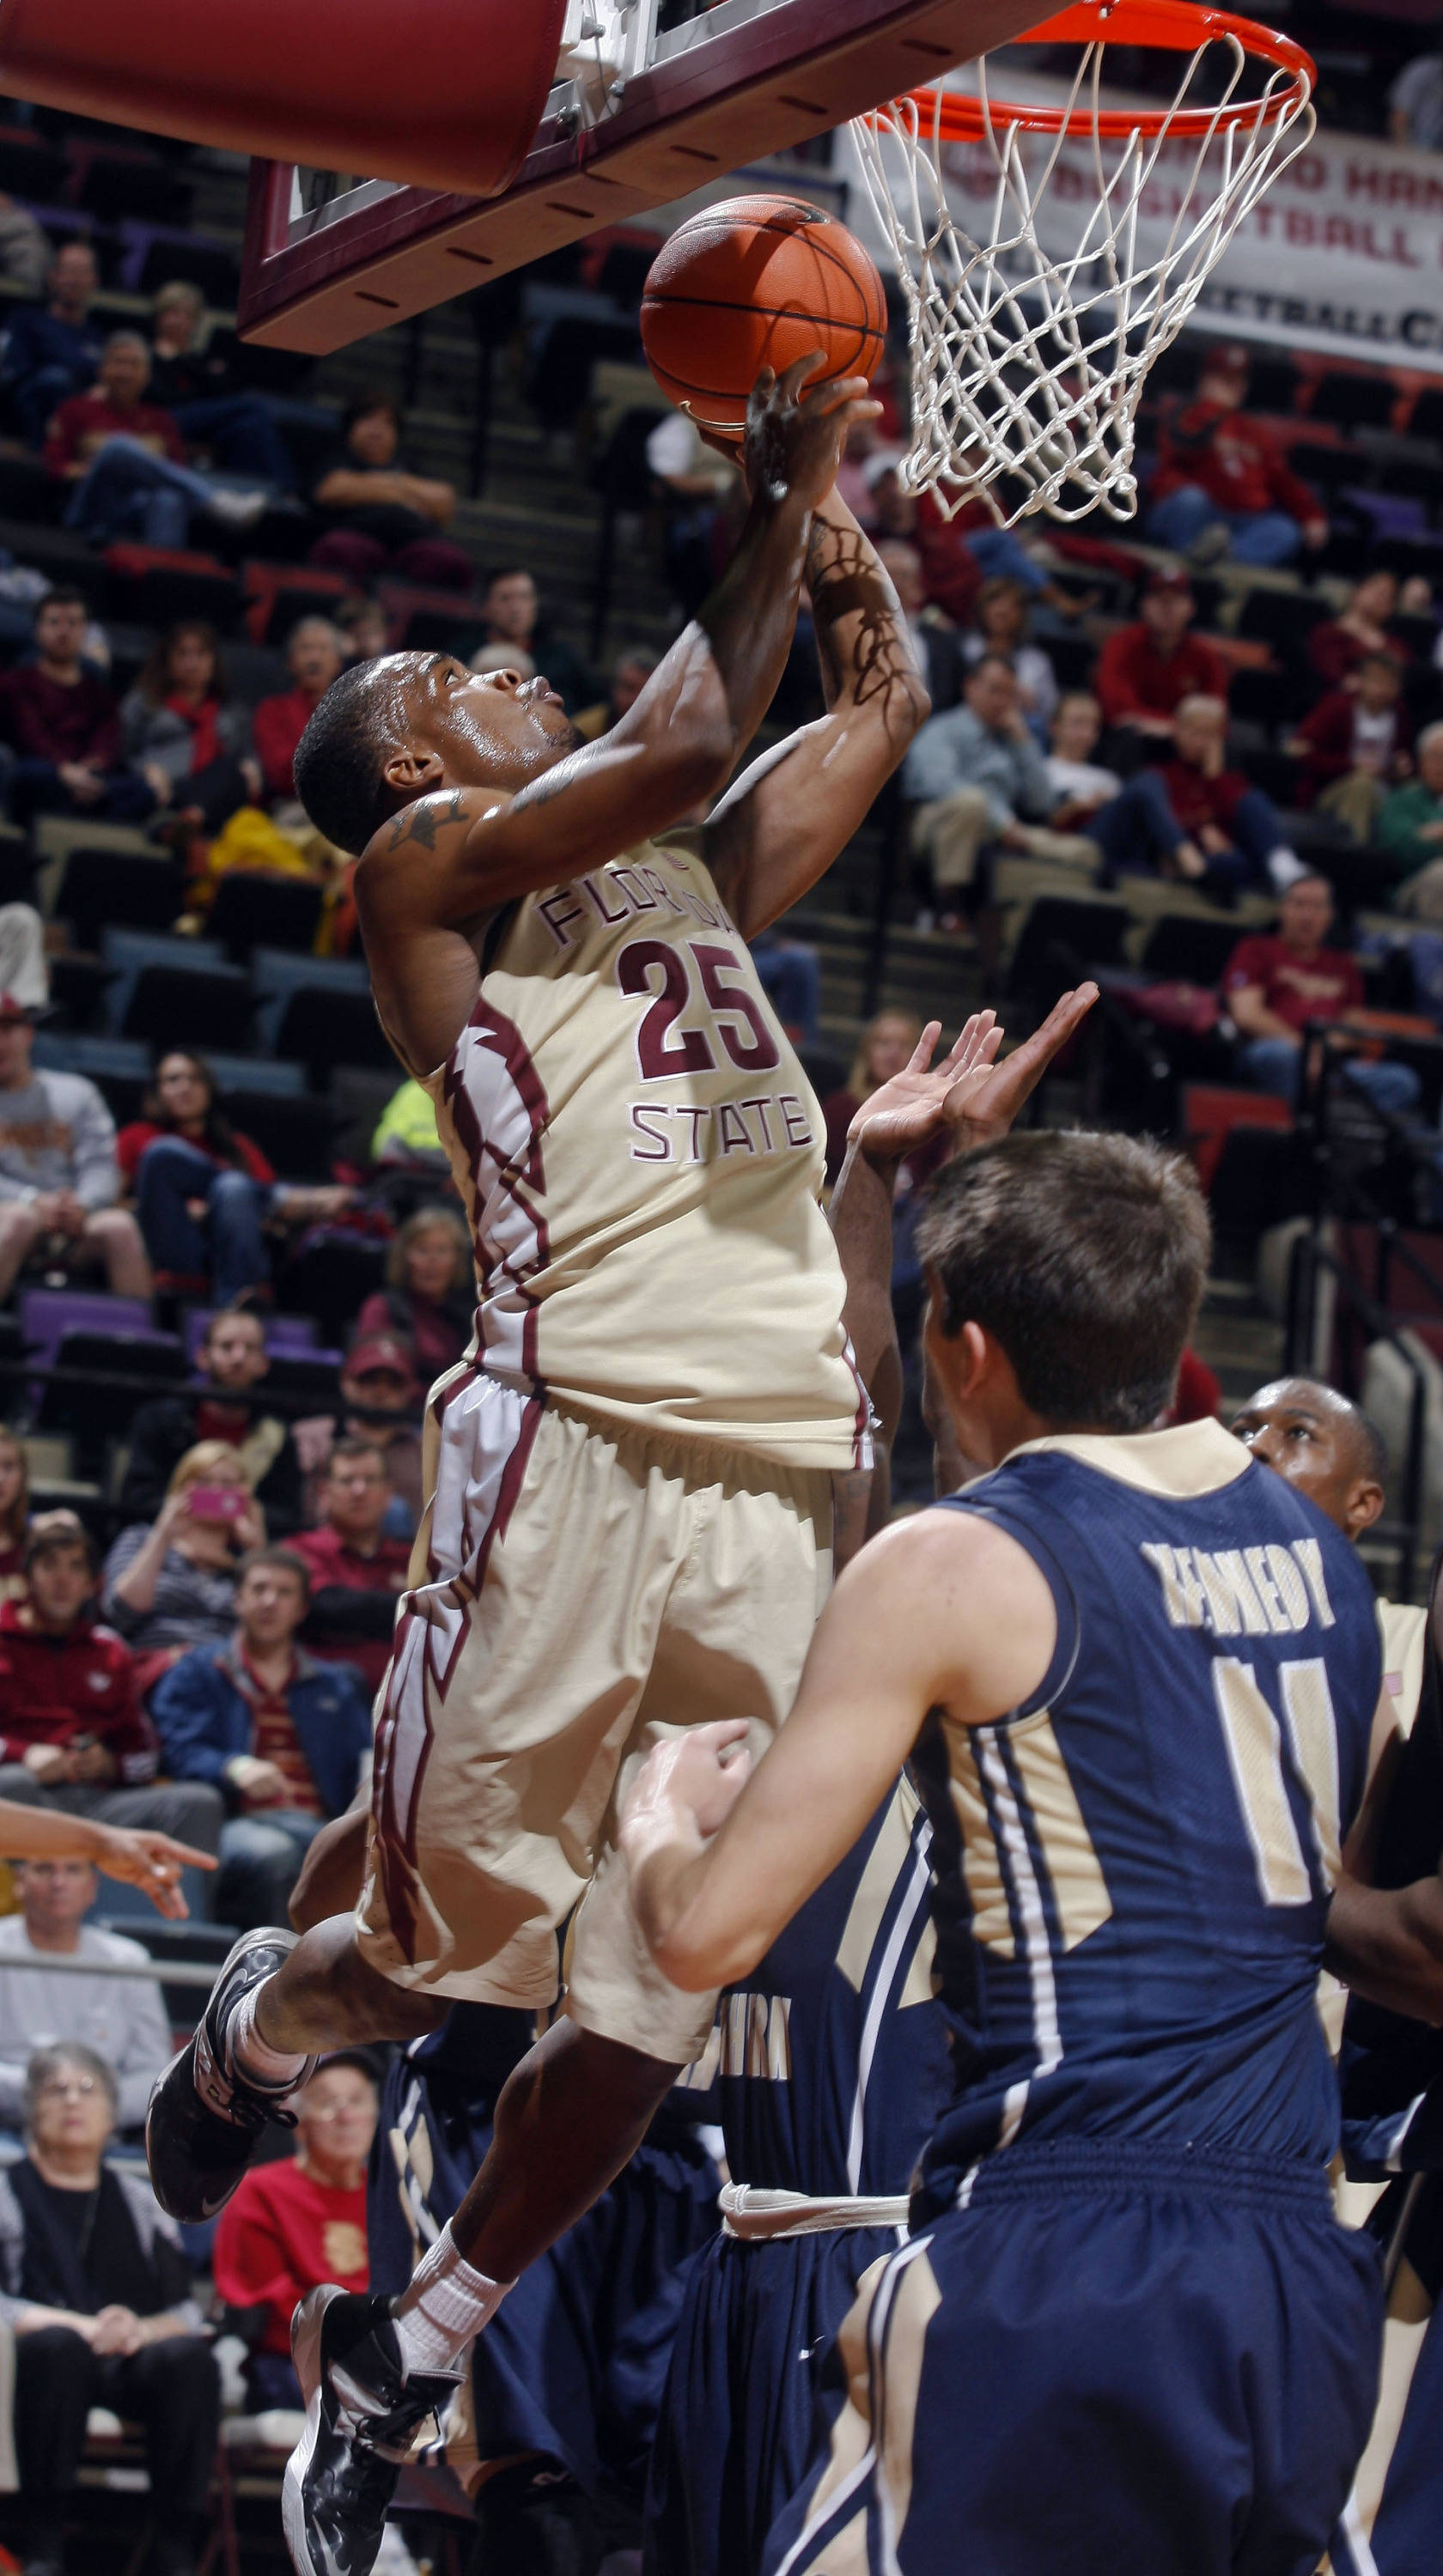 Florida State Seminoles guard Aaron Thomas (25) attempts a layup in the second half. (Phil Sears-USA TODAY Sports)